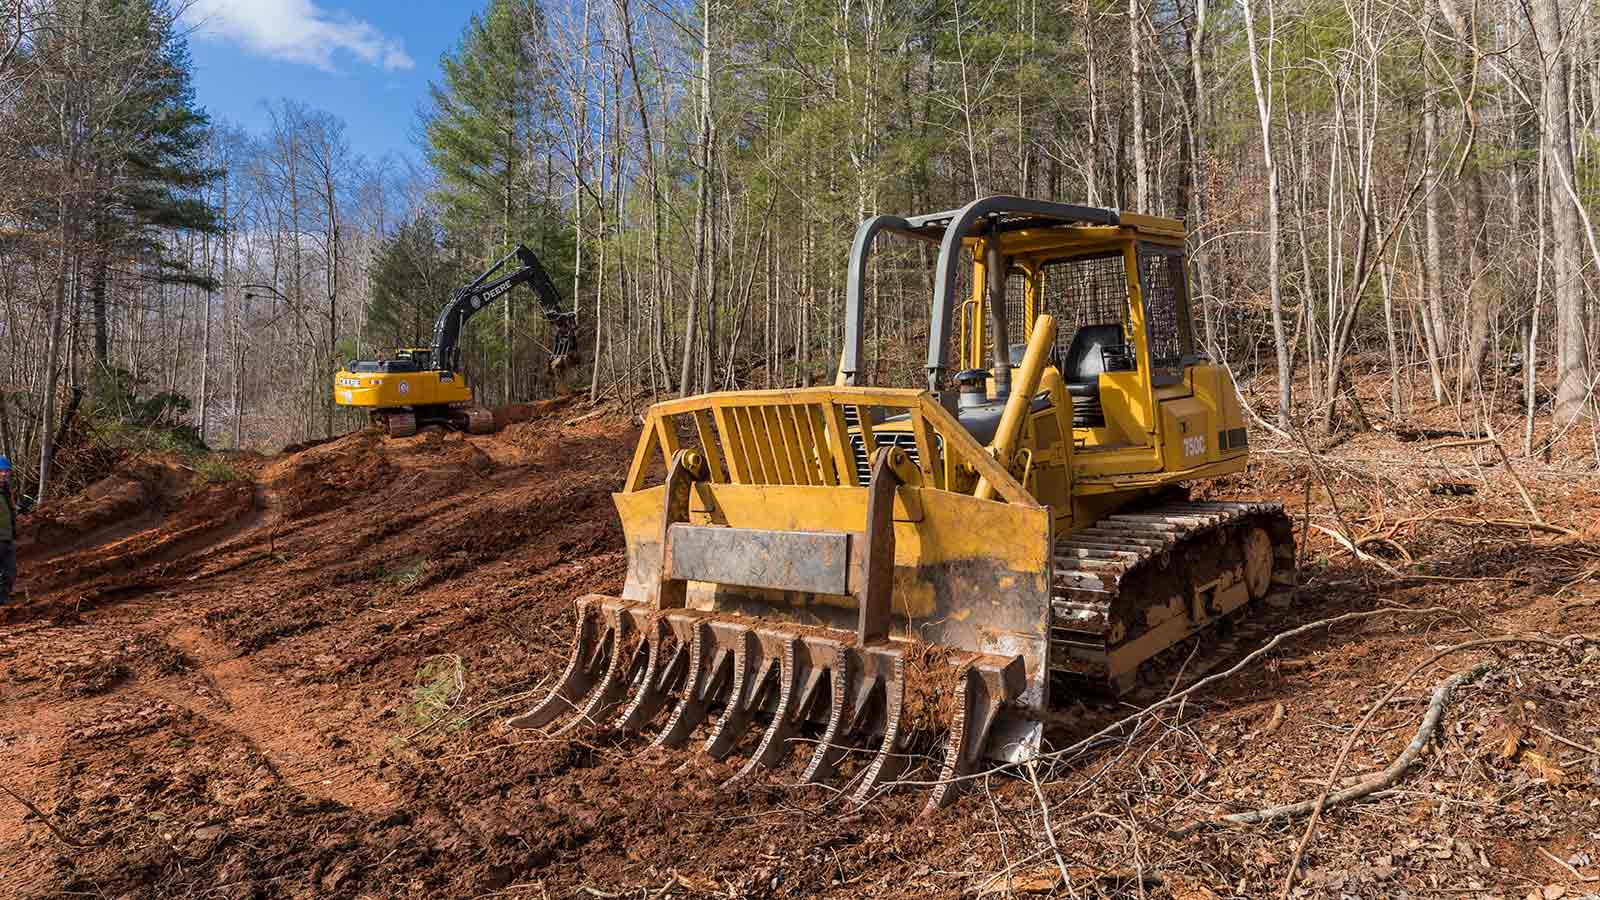 Tim Ferris' most-admired machine, a John Deere 750C Dozer, is shown on a construction site.